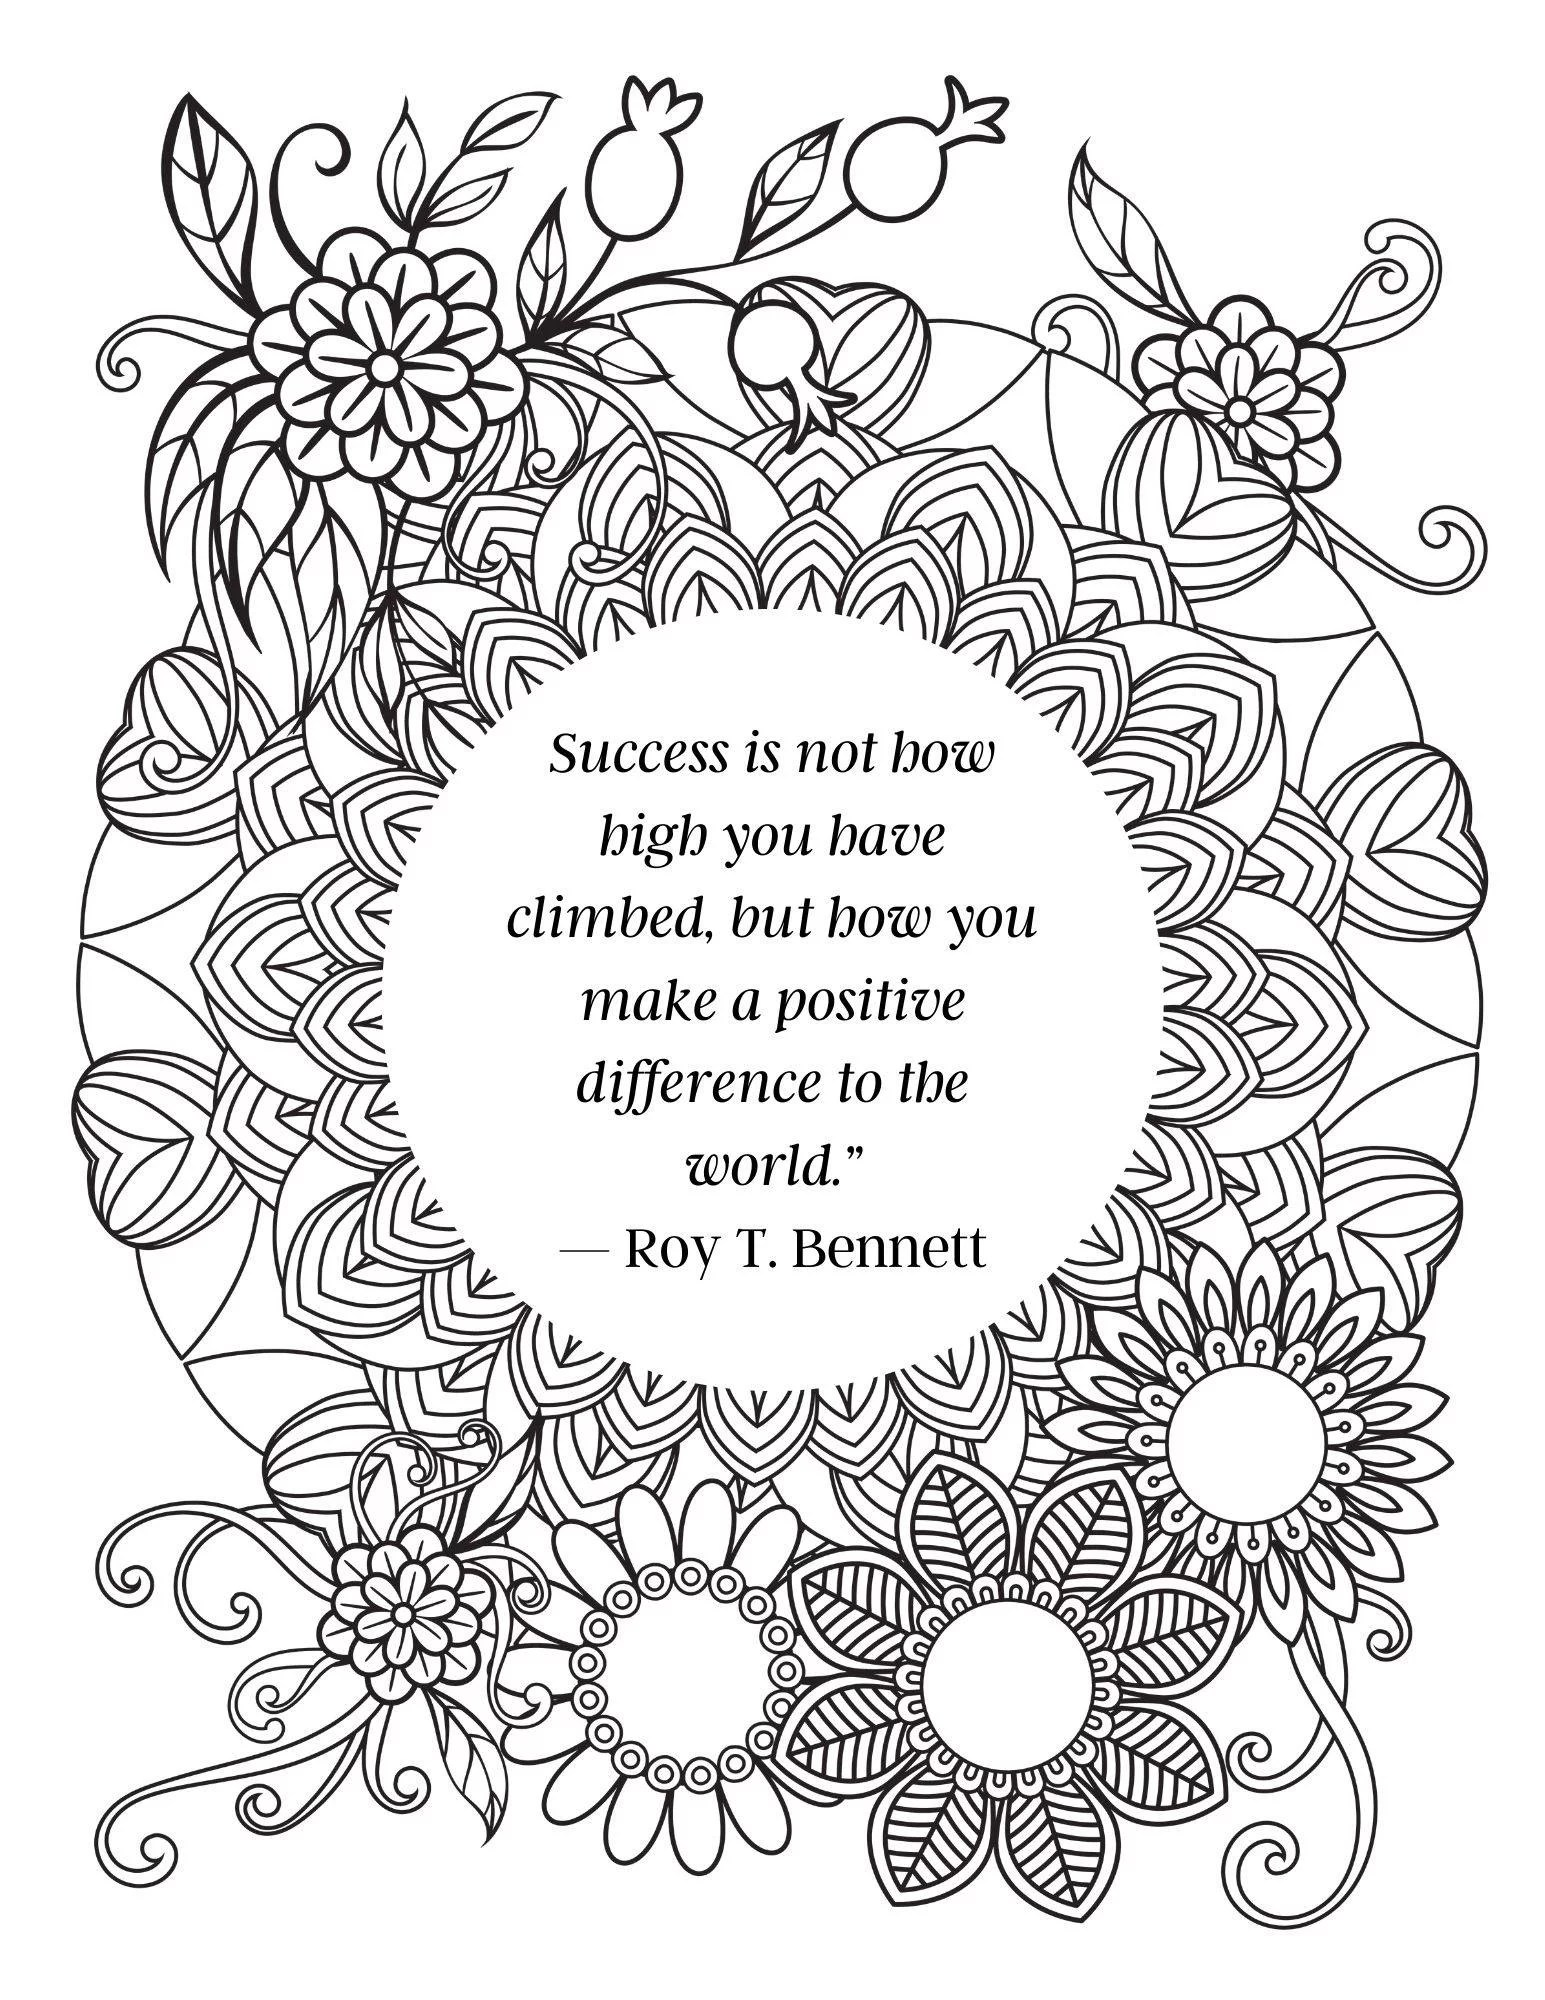 Inspirational Coloring Pages Printable - Printable